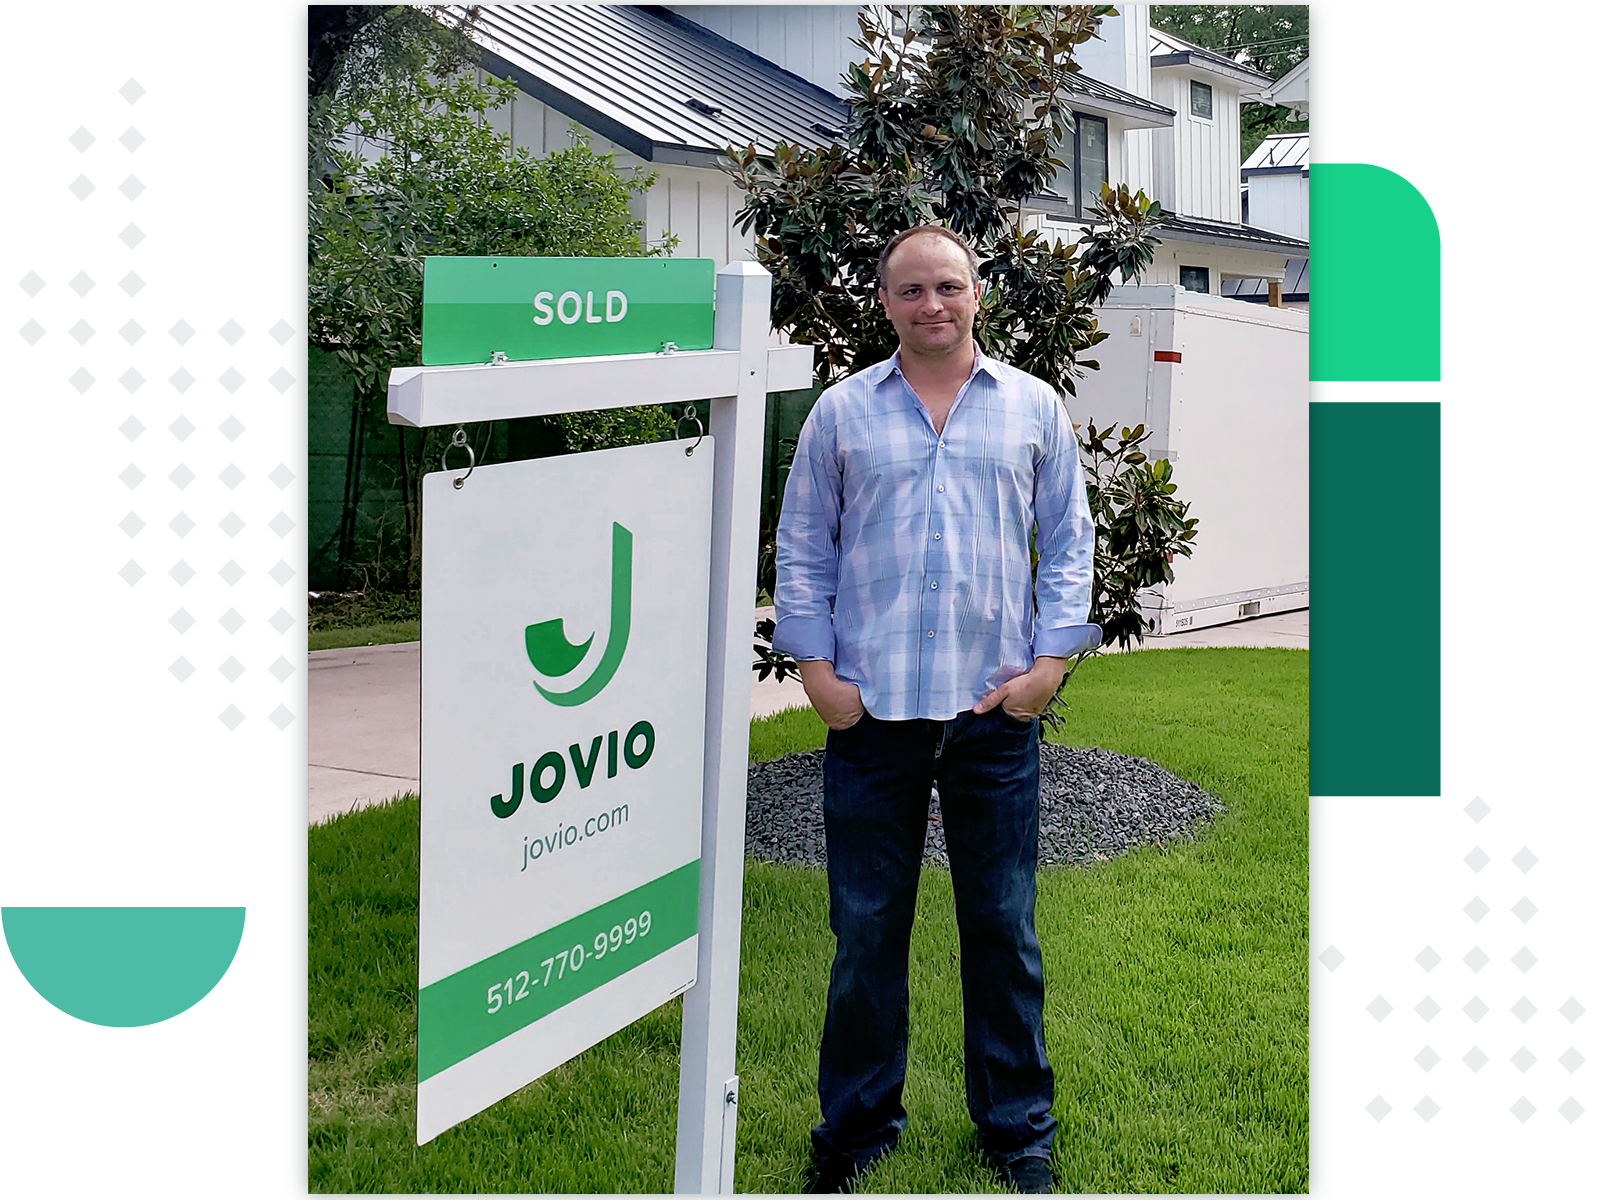 Jovio client standing next to a sold sign